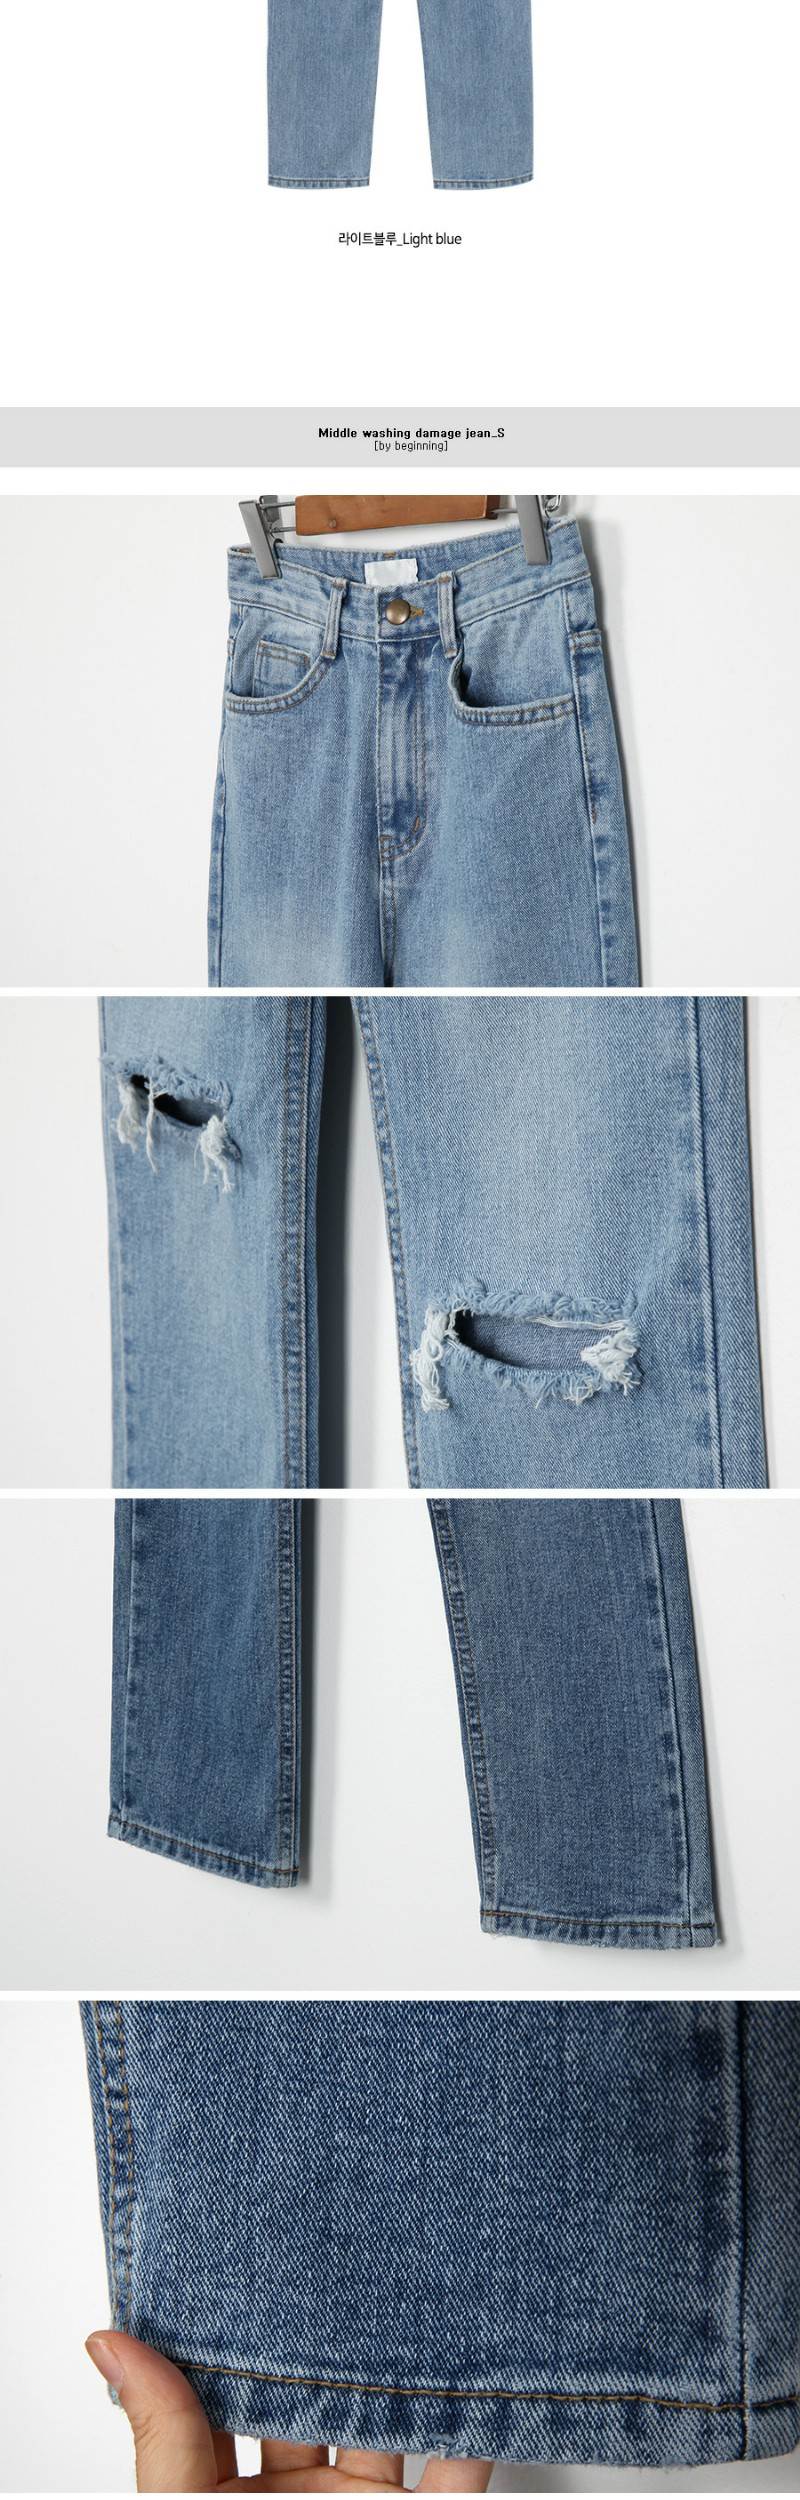 Middle washing damage jean_S (size : S,M)